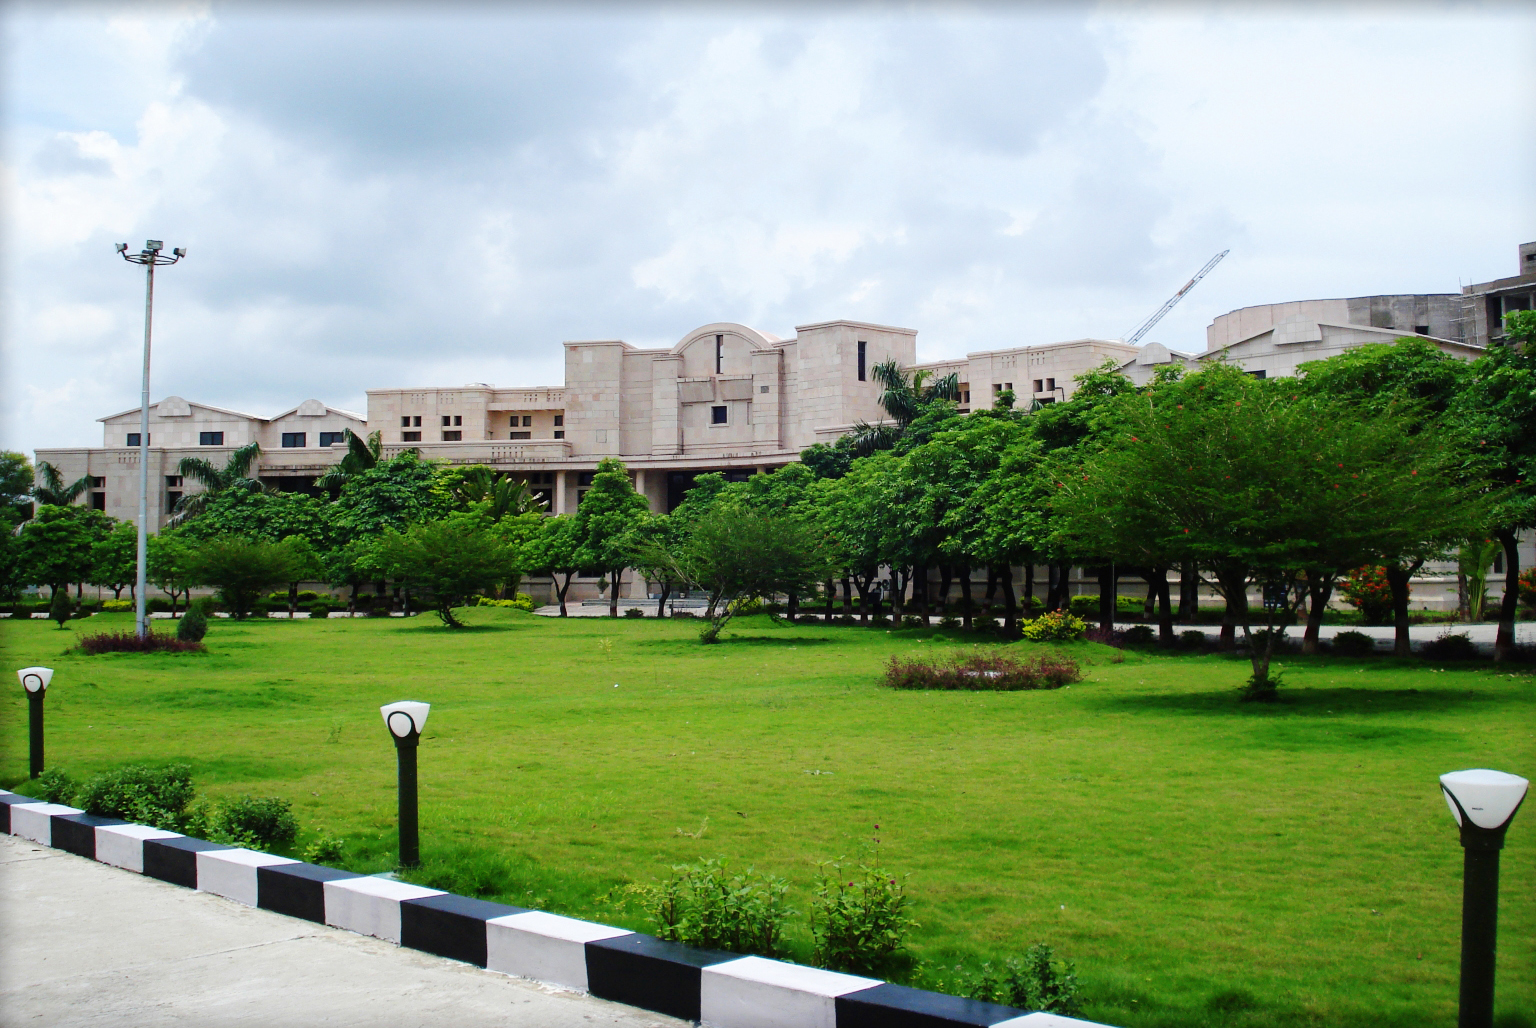 IIIT (Indian Institute of Information Technology), Allahabad Image